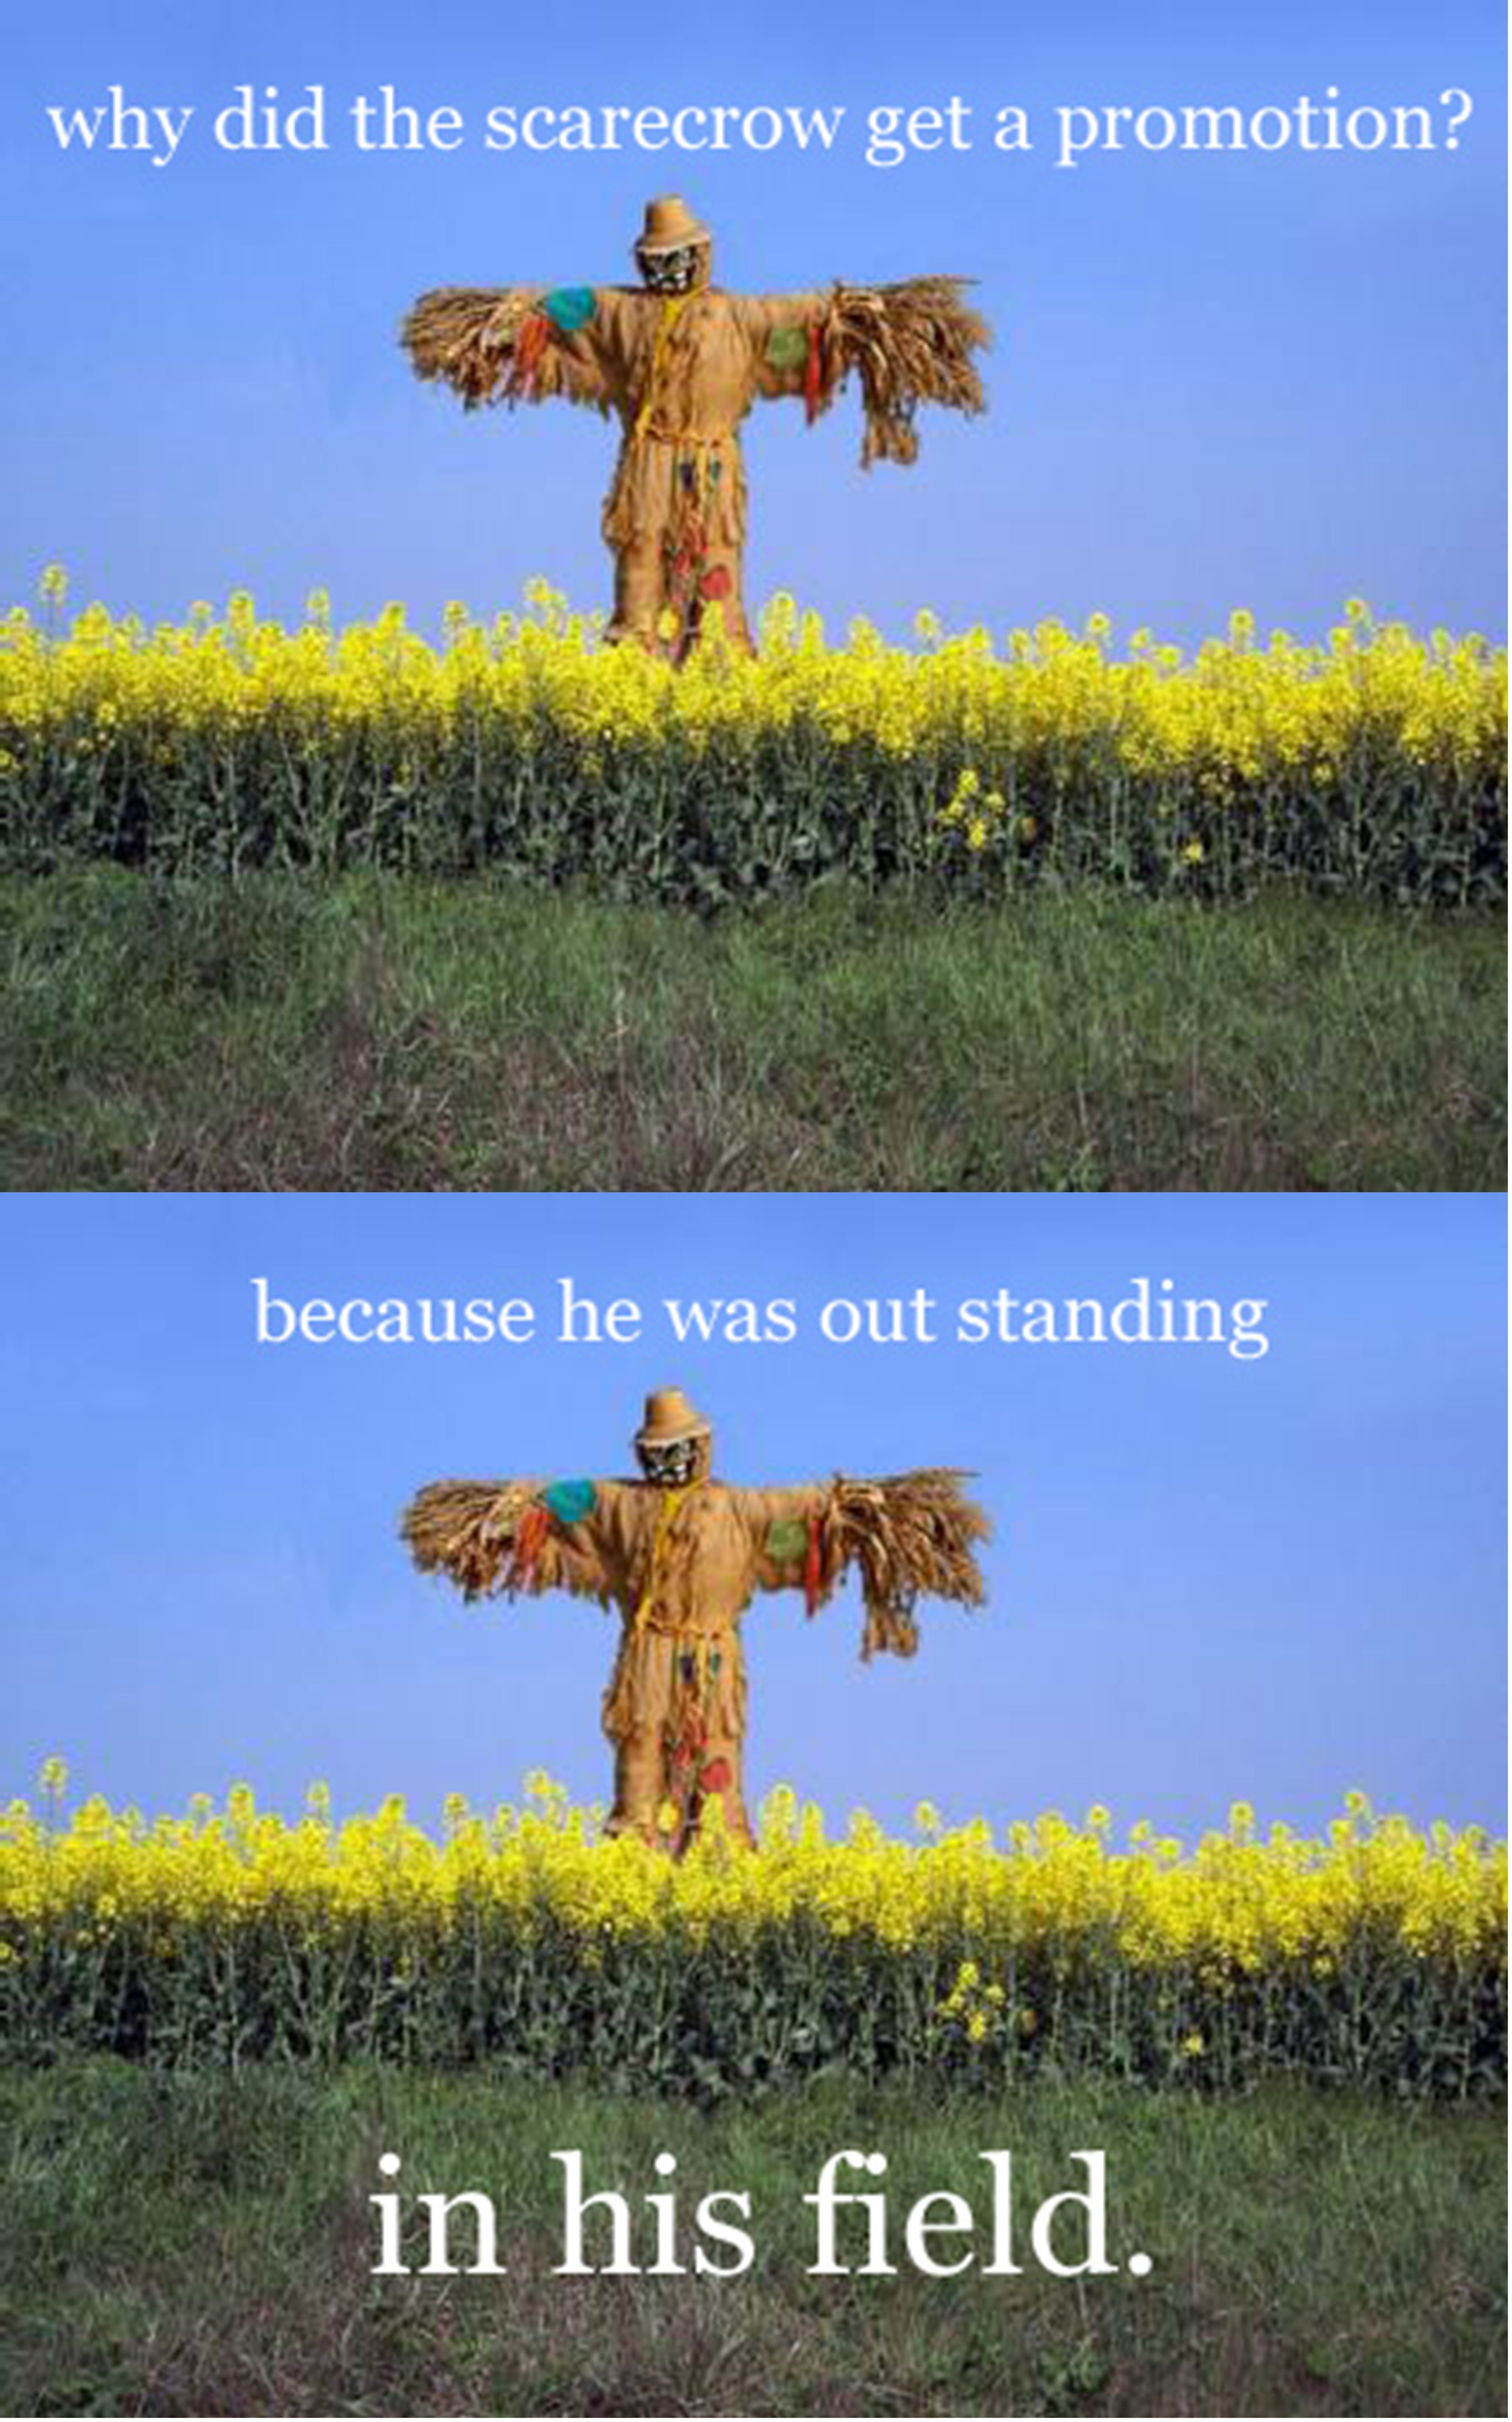 why did the scarecrow get a promotion because he was out standing why did the scarecrow get a promotion because he was out standing in his field